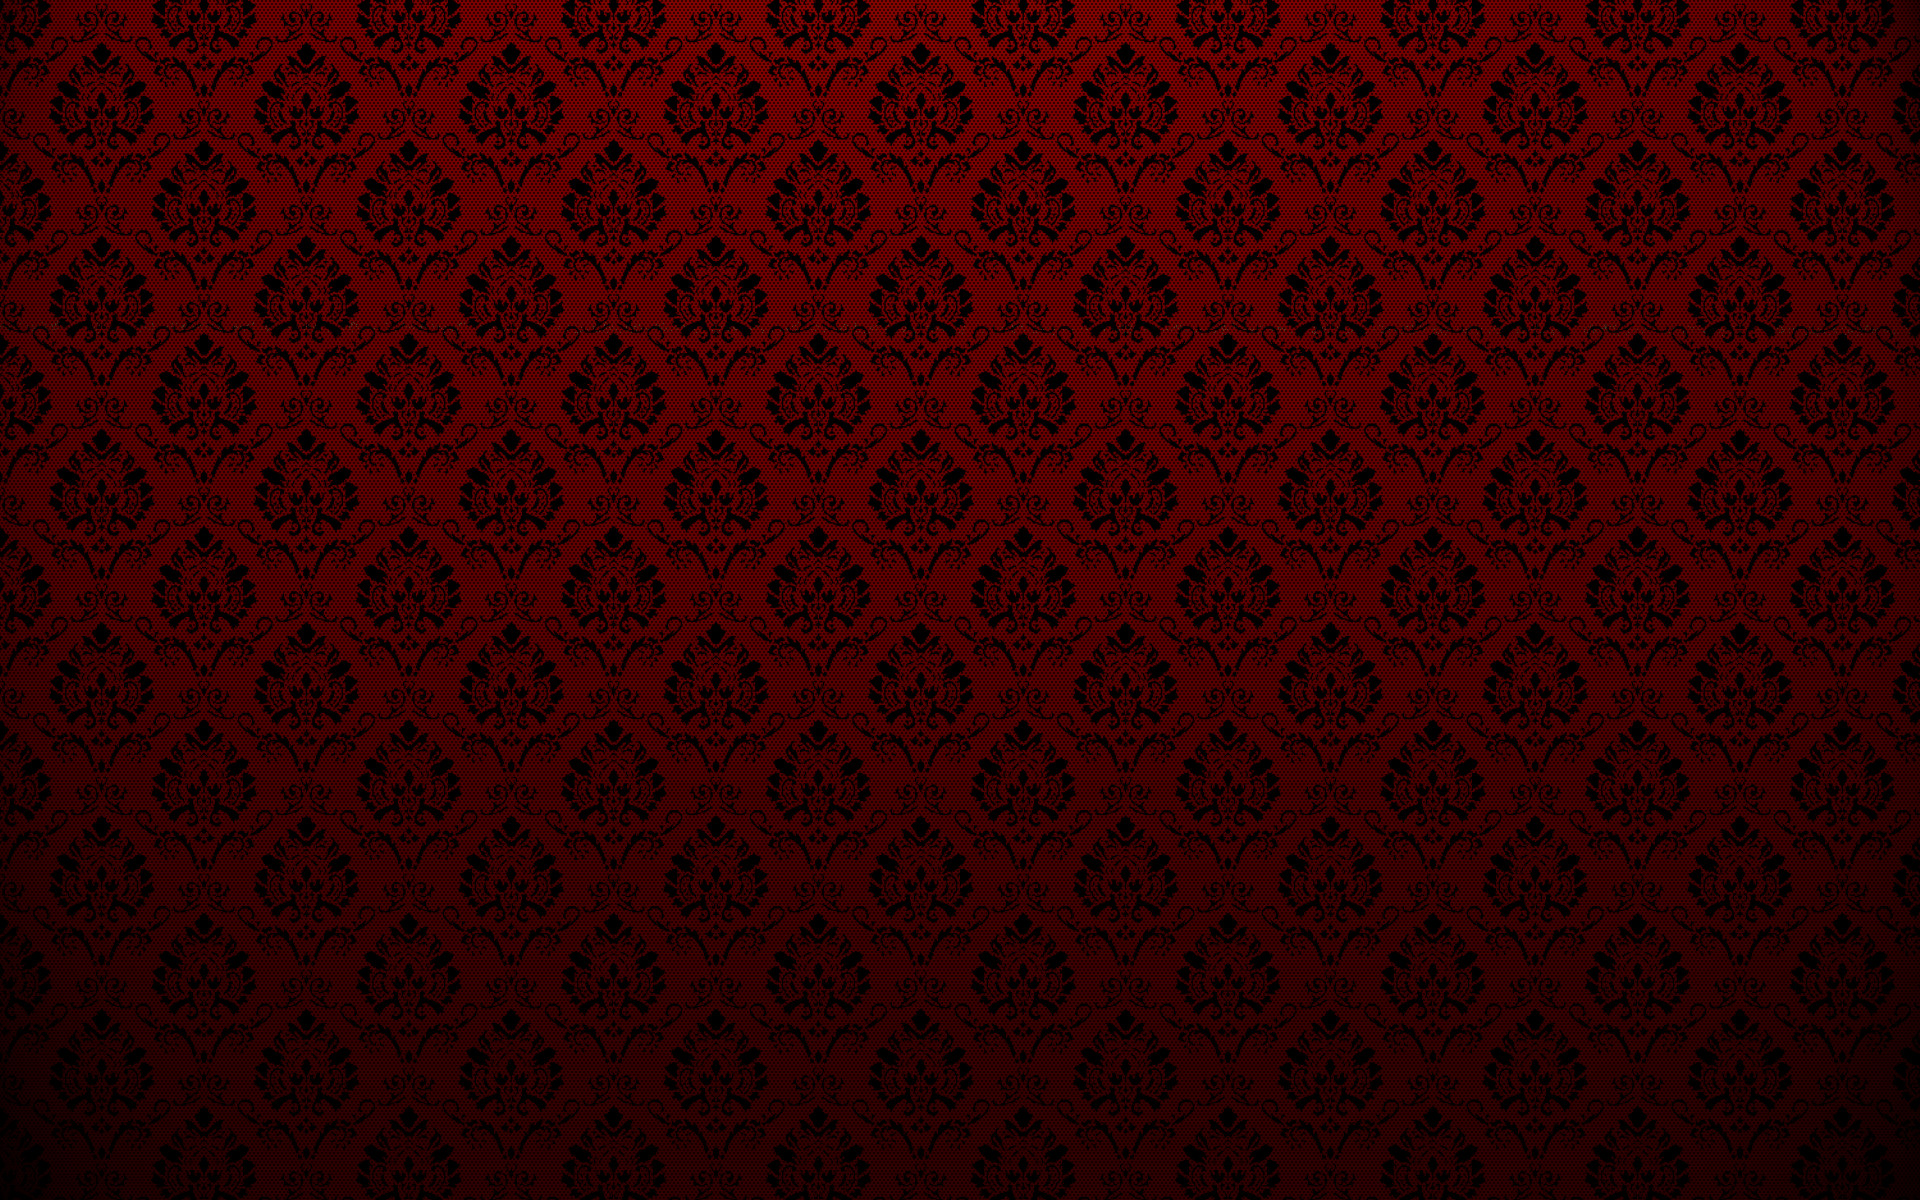 1920x1200 Awesome Red Wallpaper. Â«